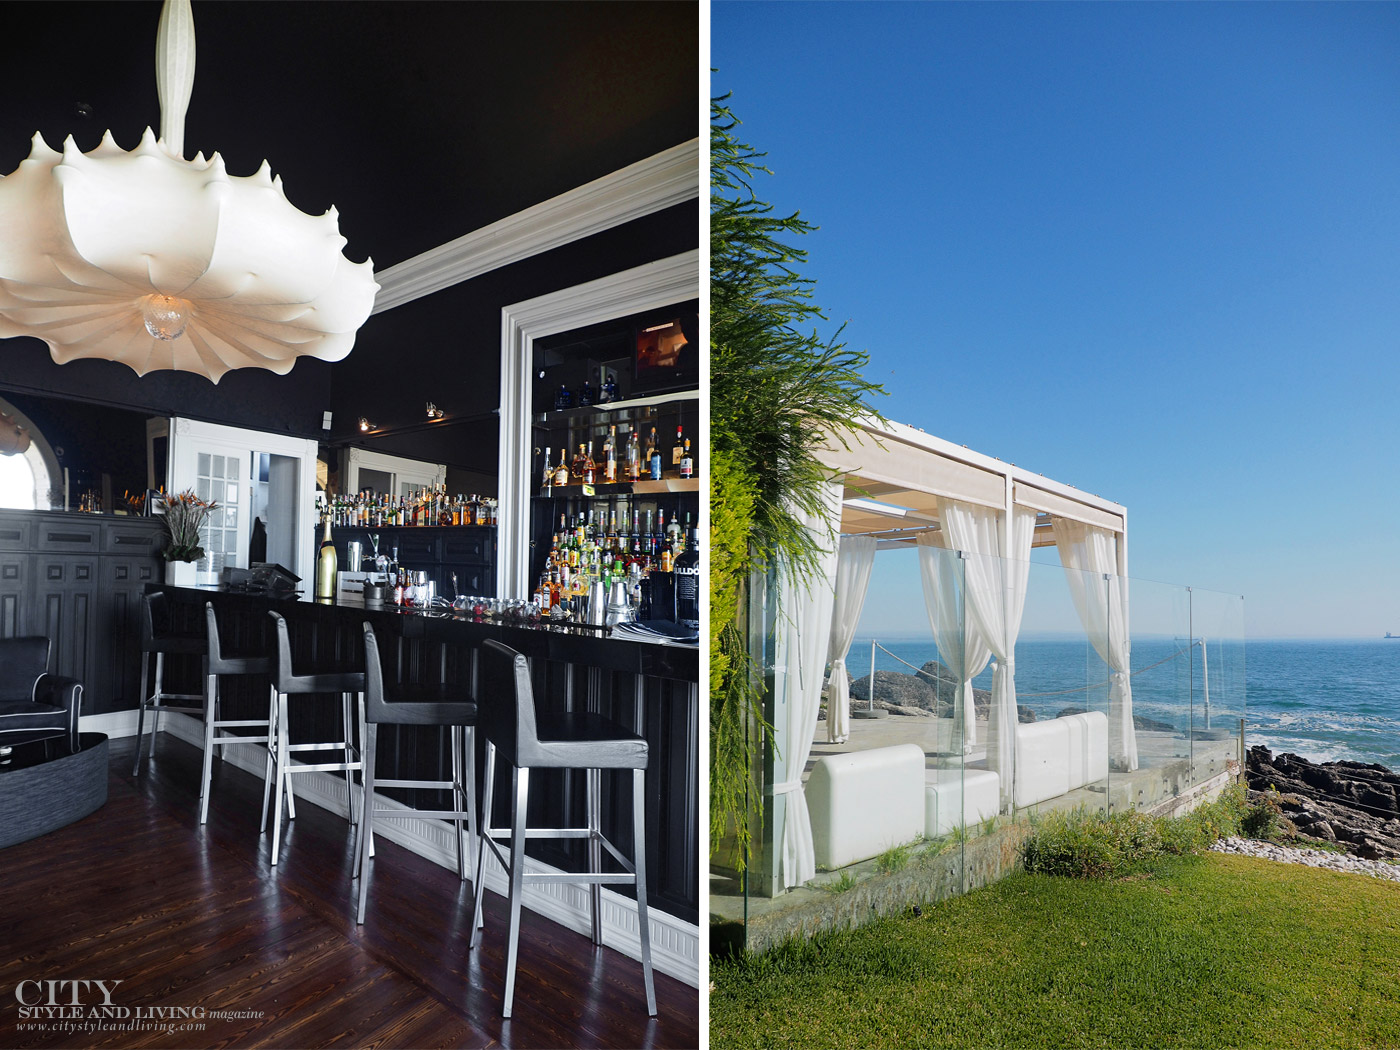 City Style and Living Magazine Travel Hotel Farol Cascais Portugal chairs at bar and restaurant overlooking the sea